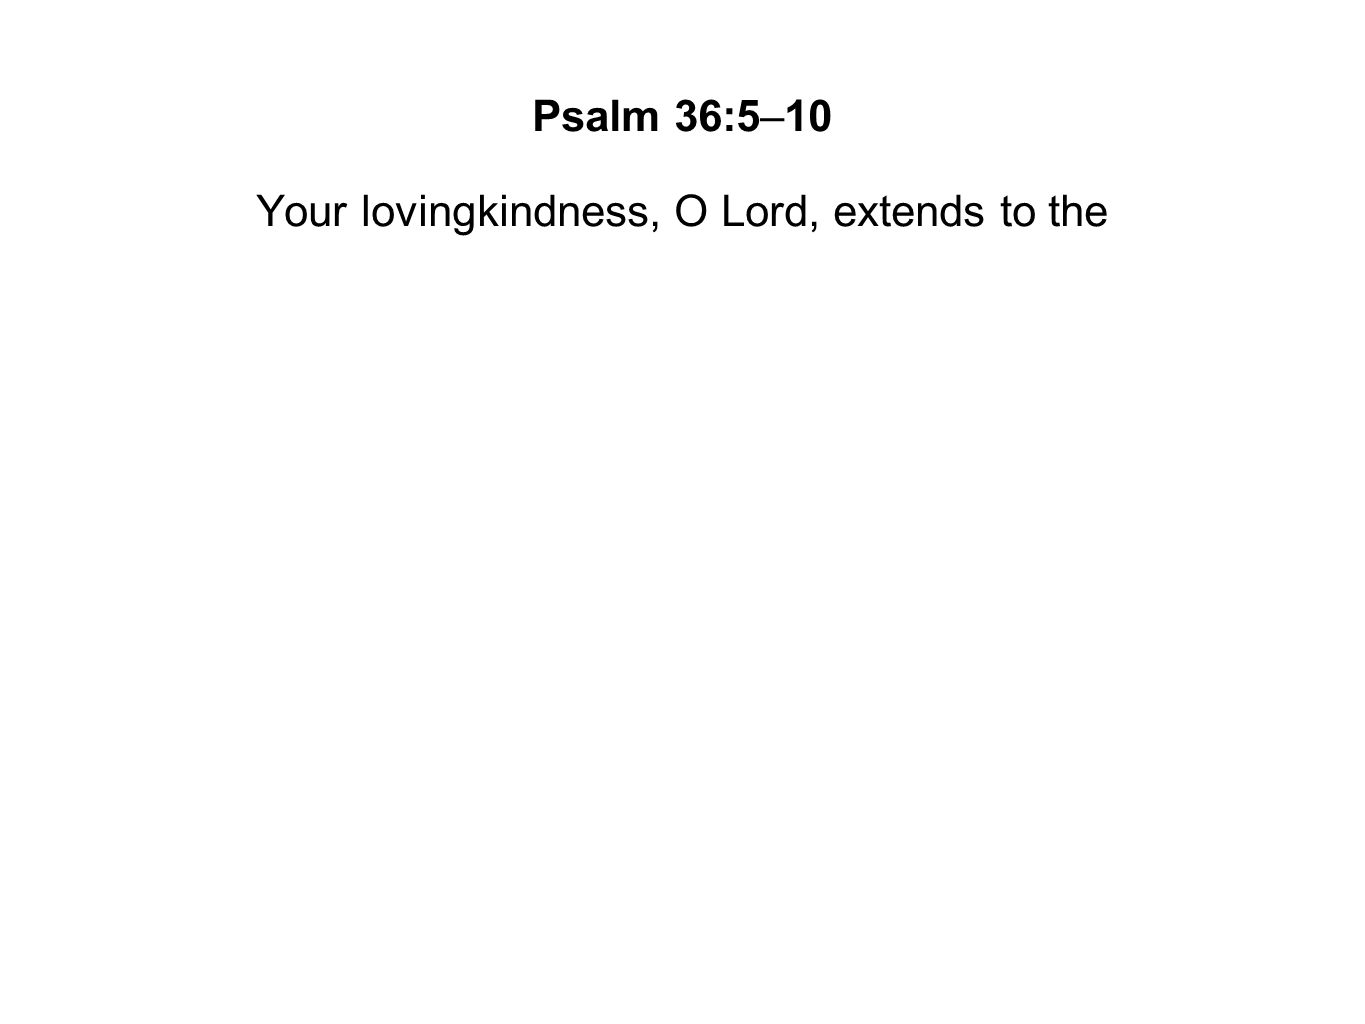 Your lovingkindness, O Lord, extends to the